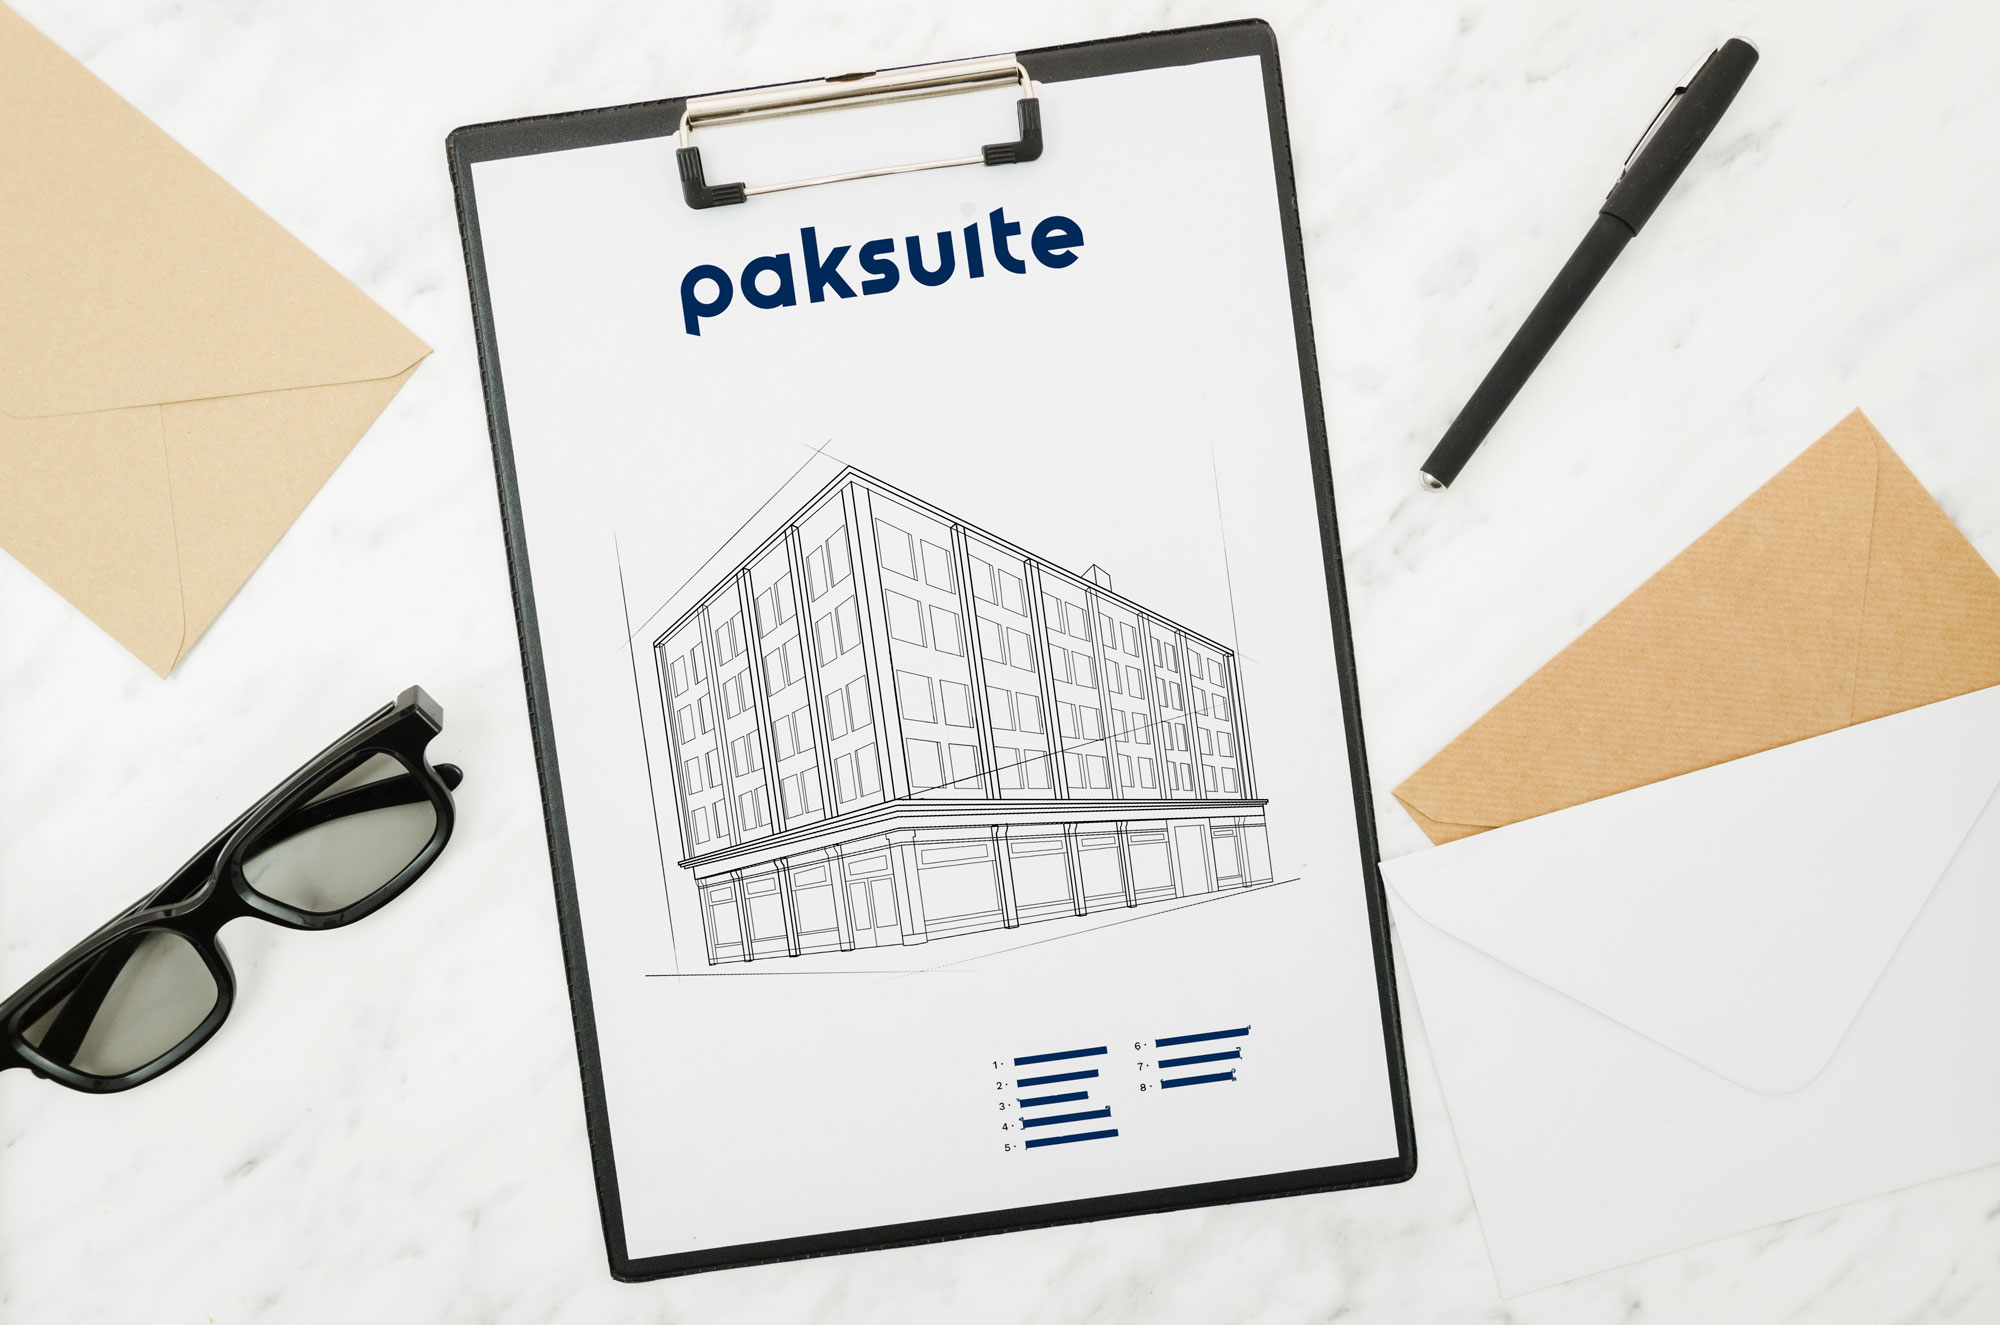 Paksuite Investor Marketing